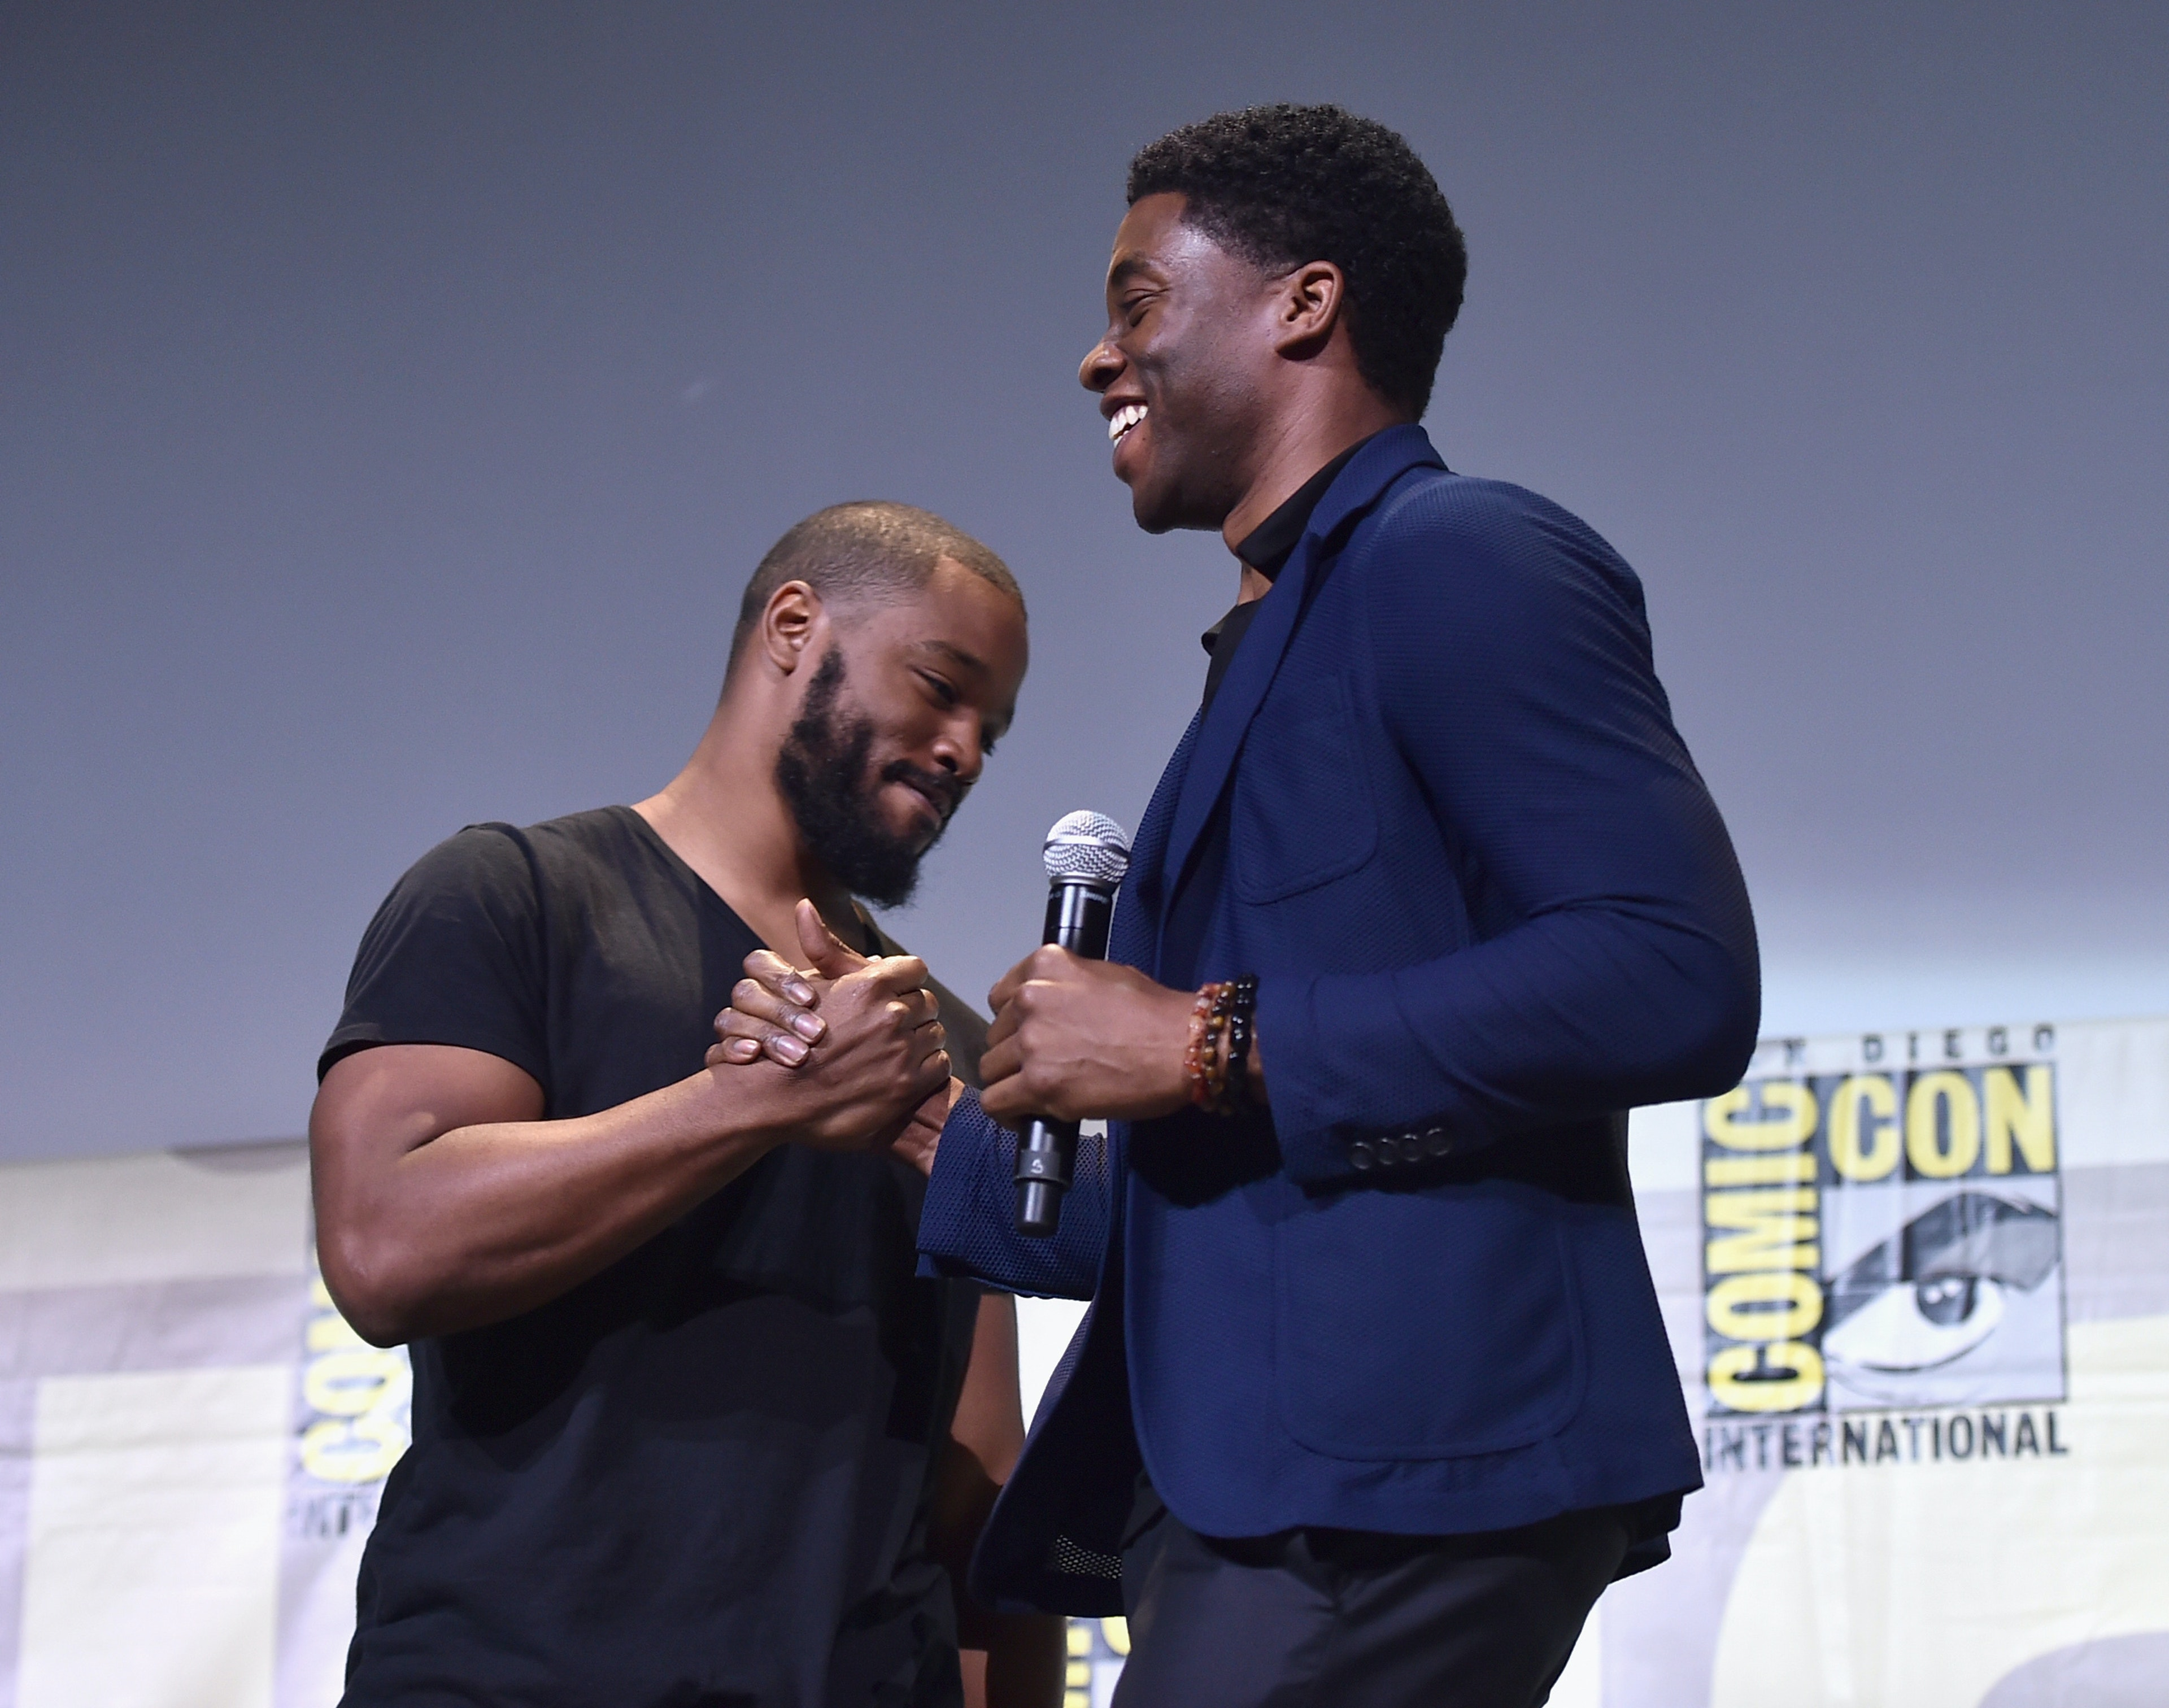 "SAN DIEGO, CA - JULY 23: Director Ryan Coogler (L) and actor Chadwick Boseman from Marvel Studios' 'Black Panther"" attend the San Diego Comic-Con International 2016 Marvel Panel in Hall H on July 23, 2016 in San Diego, California. ©Marvel Studios 2016  (Photo by Alberto E. Rodriguez/Getty Images for Disney)"